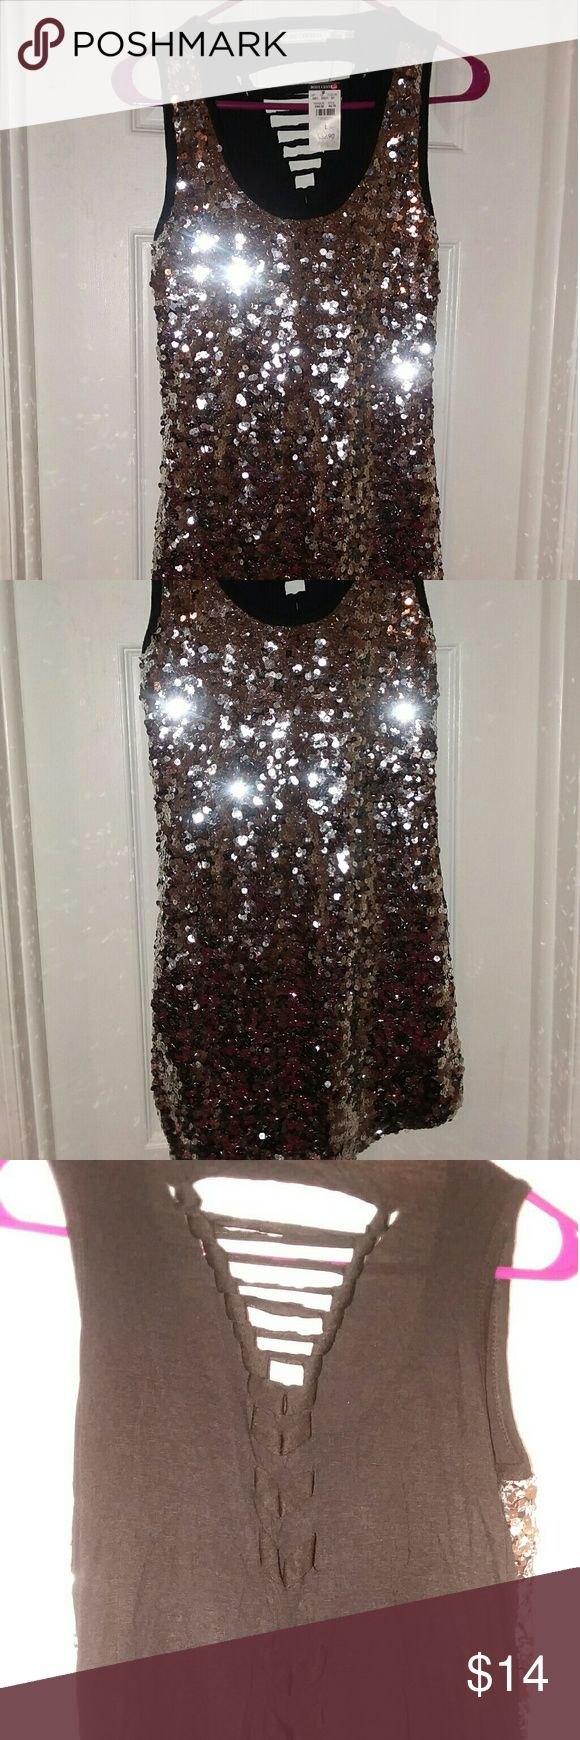 Silver sequined dress NWT Silver and Black sequined dress. Perfect for a semi-formal, cocktail dress, or girls night out!! Front is top to bottom  Silver sequined and back is a peek-a-boo criss  cross  pattern  down the middle of back. Material had some stretch so it gives for comfort with wear. Body Central Dresses Mini